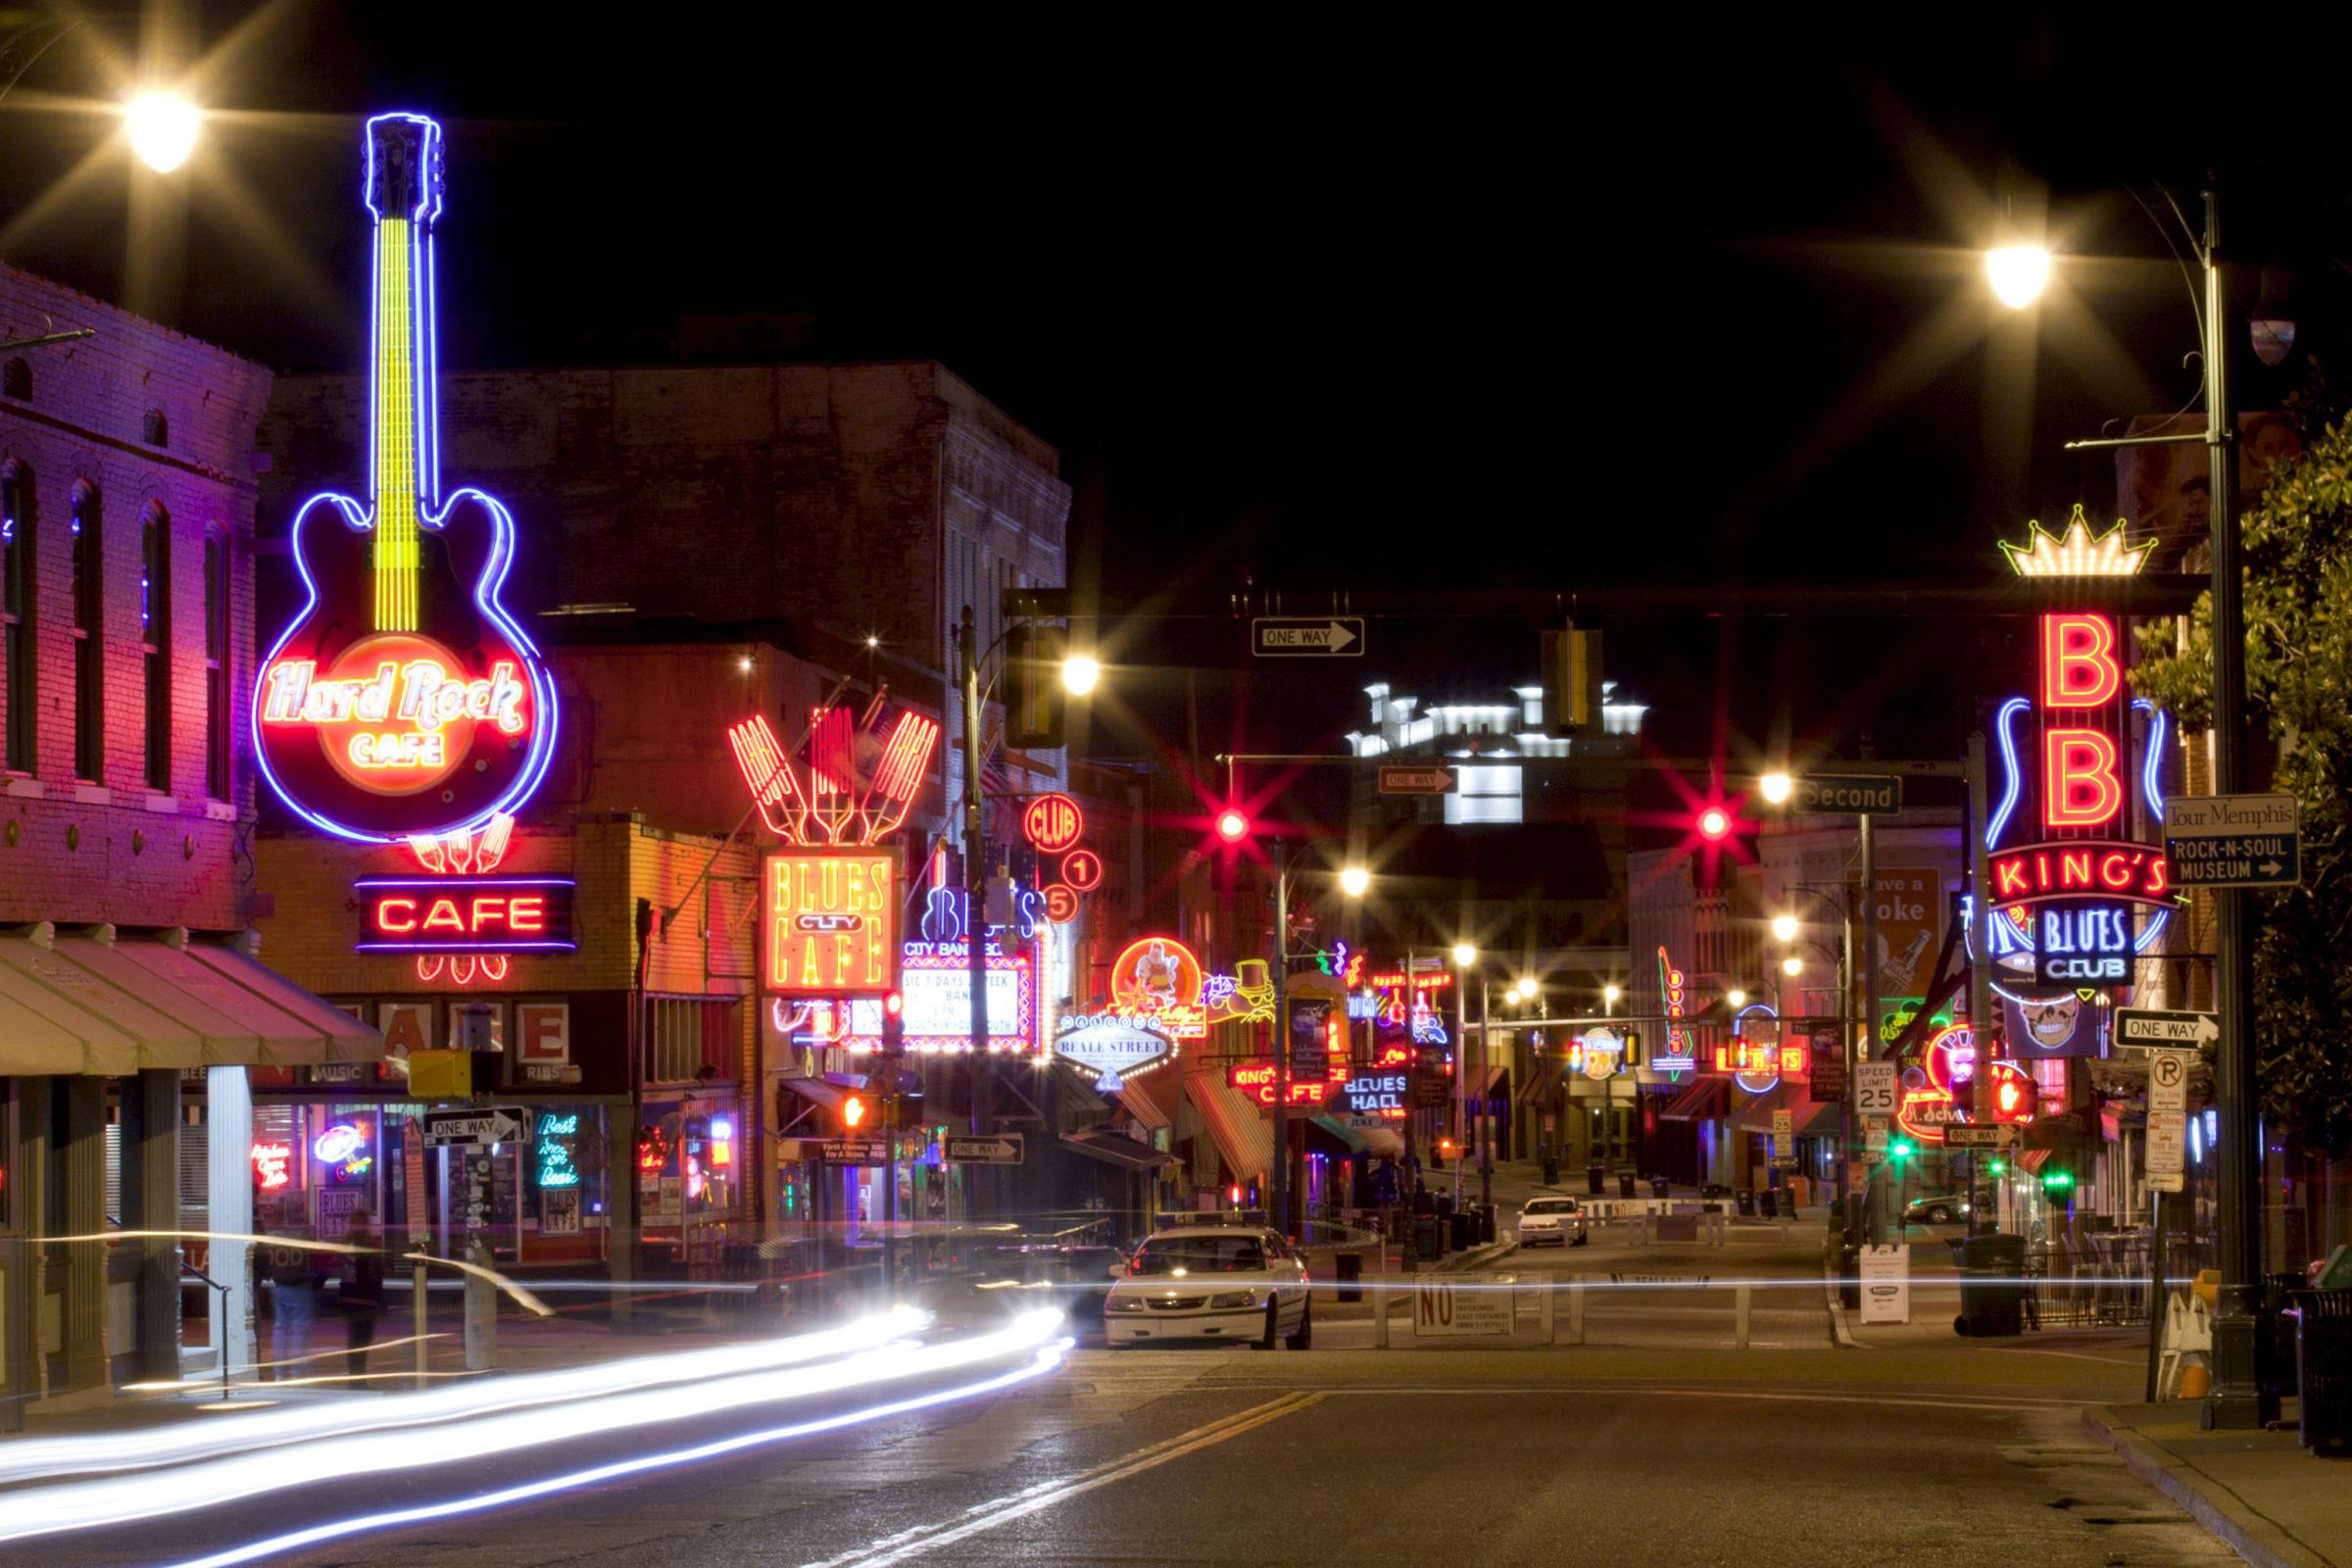 Travel: Following the US Civil Rights Trail from Atlanta to Memphis